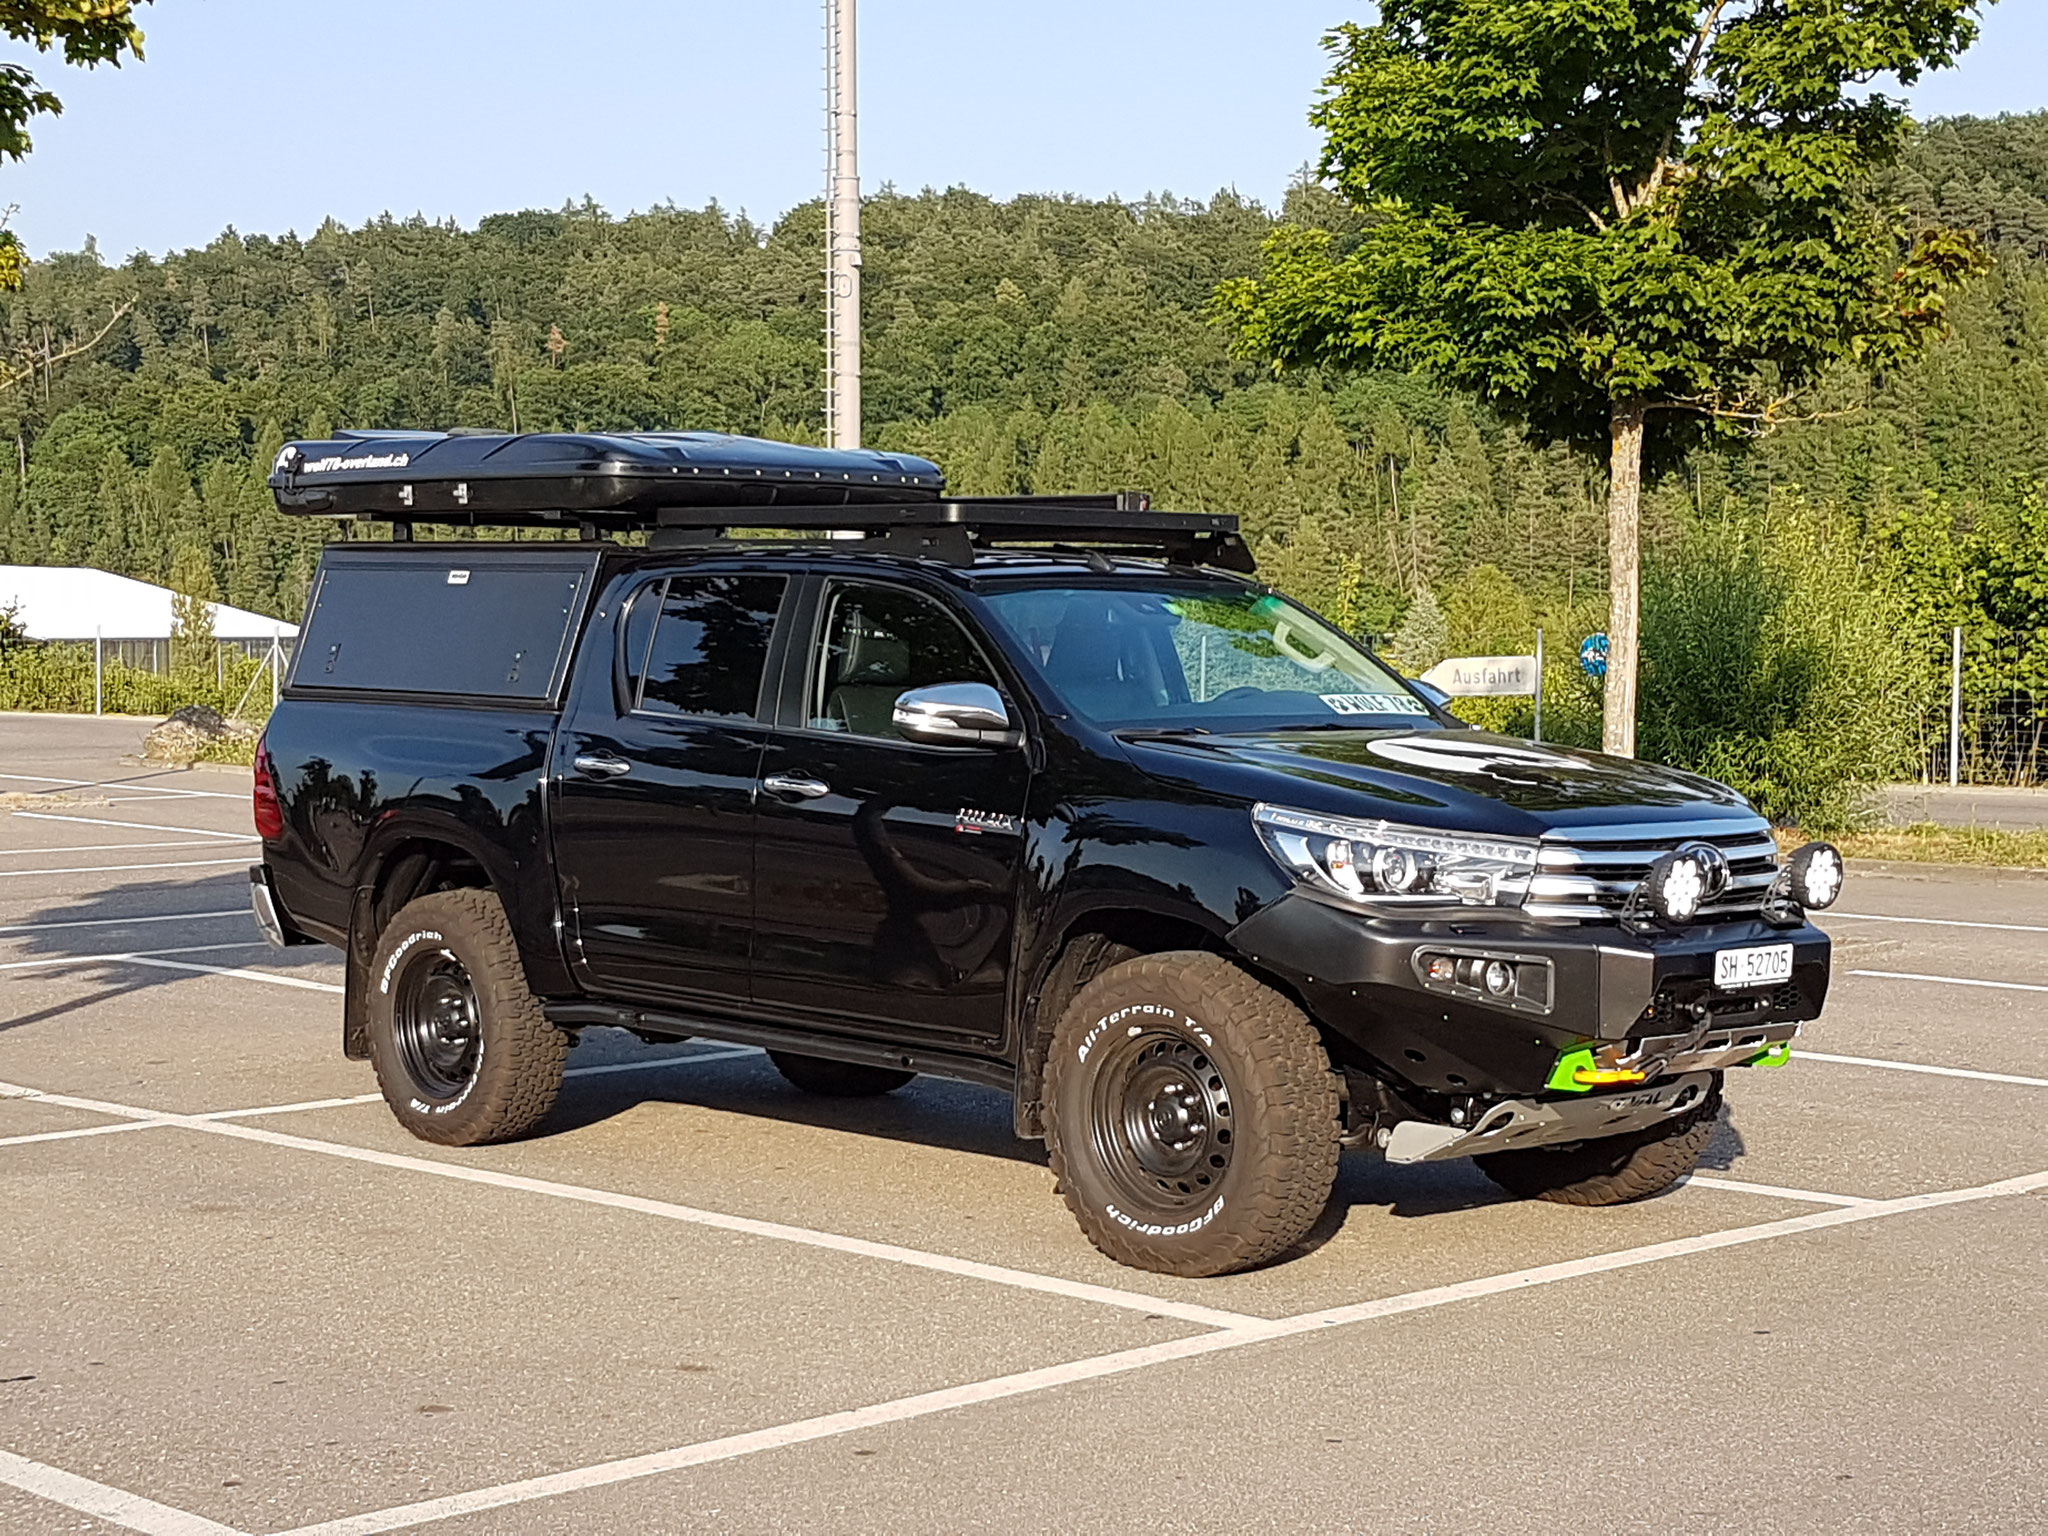 Toyota Hilux Revo AFN Front bumper Steel Stahlstossstange 2017 2.4 #ProjektBlAlucab offroad tires overland expedition 4x4 ARB Frontrunner Horntools Winch Rival4x4 James Baroude Discovery Awining Markise bfgoodrich 265/70R17 TJM Sknorkel wolf78-overland.ch